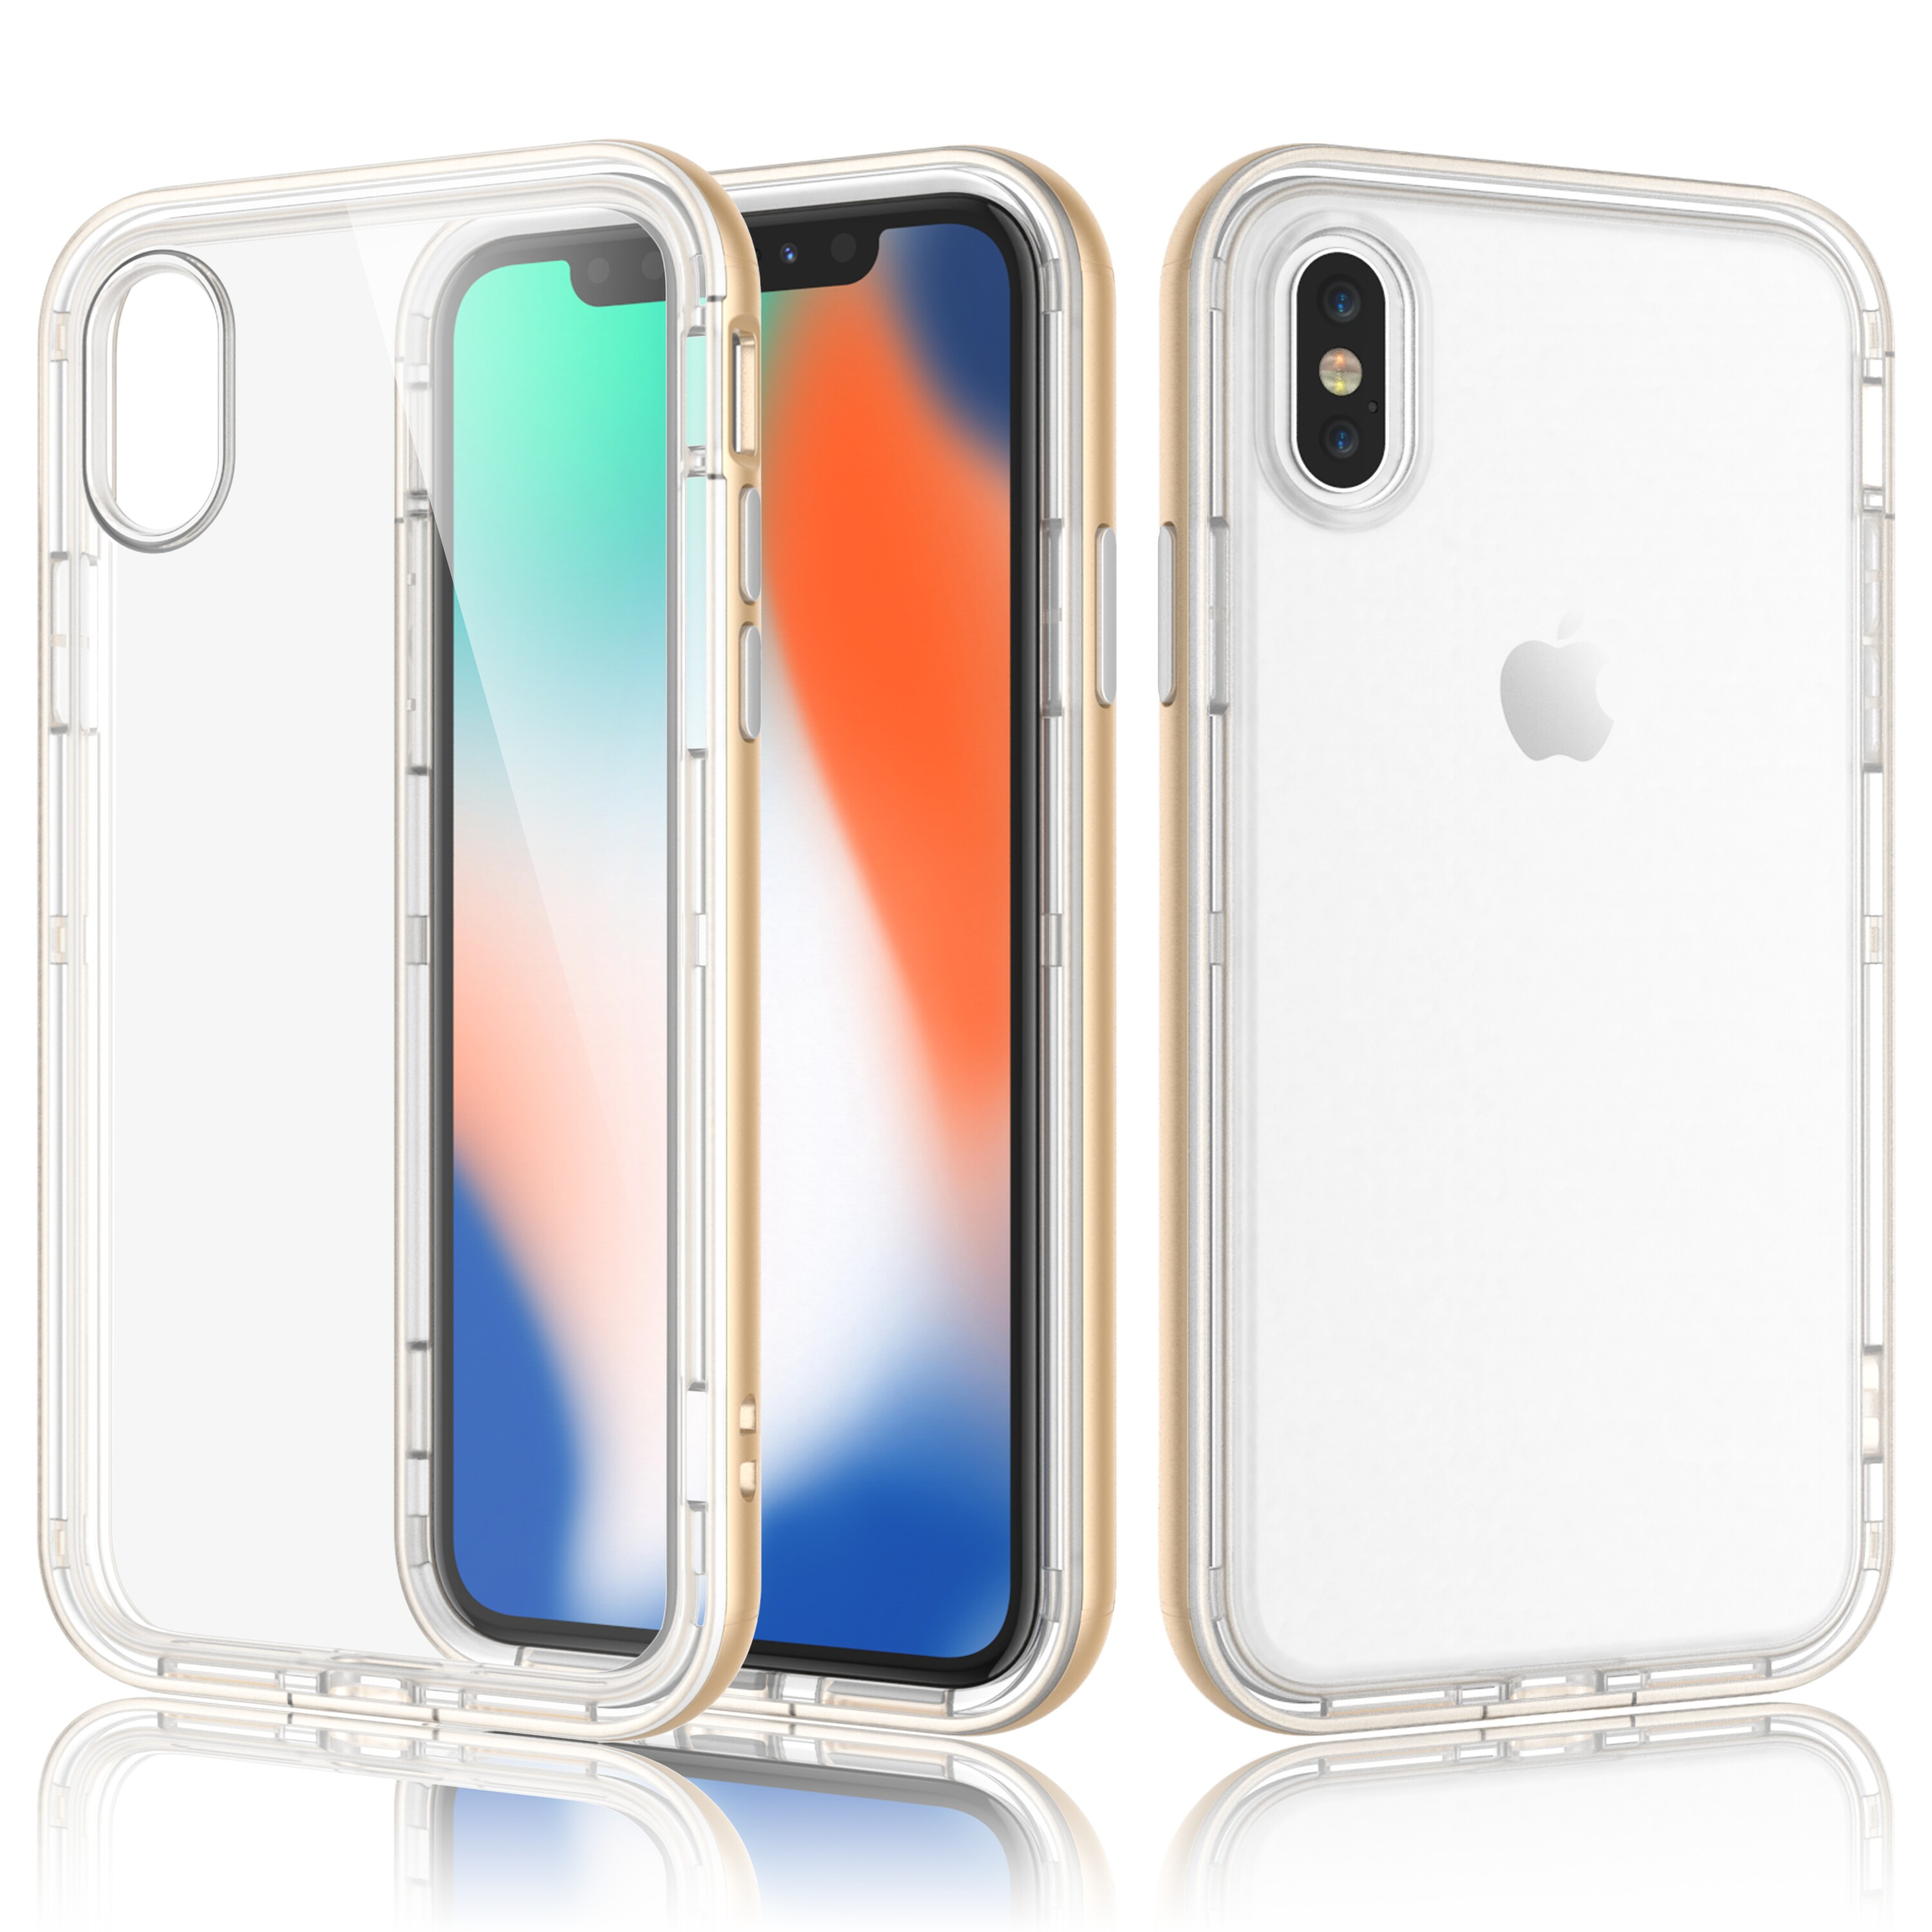 iPhone X Case, iPhone 10 Clear Case, iPhone X Edition Cover, Njjex Ultra Thin TPU Soft Case With Bling Diamond Cover For Apple iPhone X /iPhone 10 (2017 Release) -Rose Gold